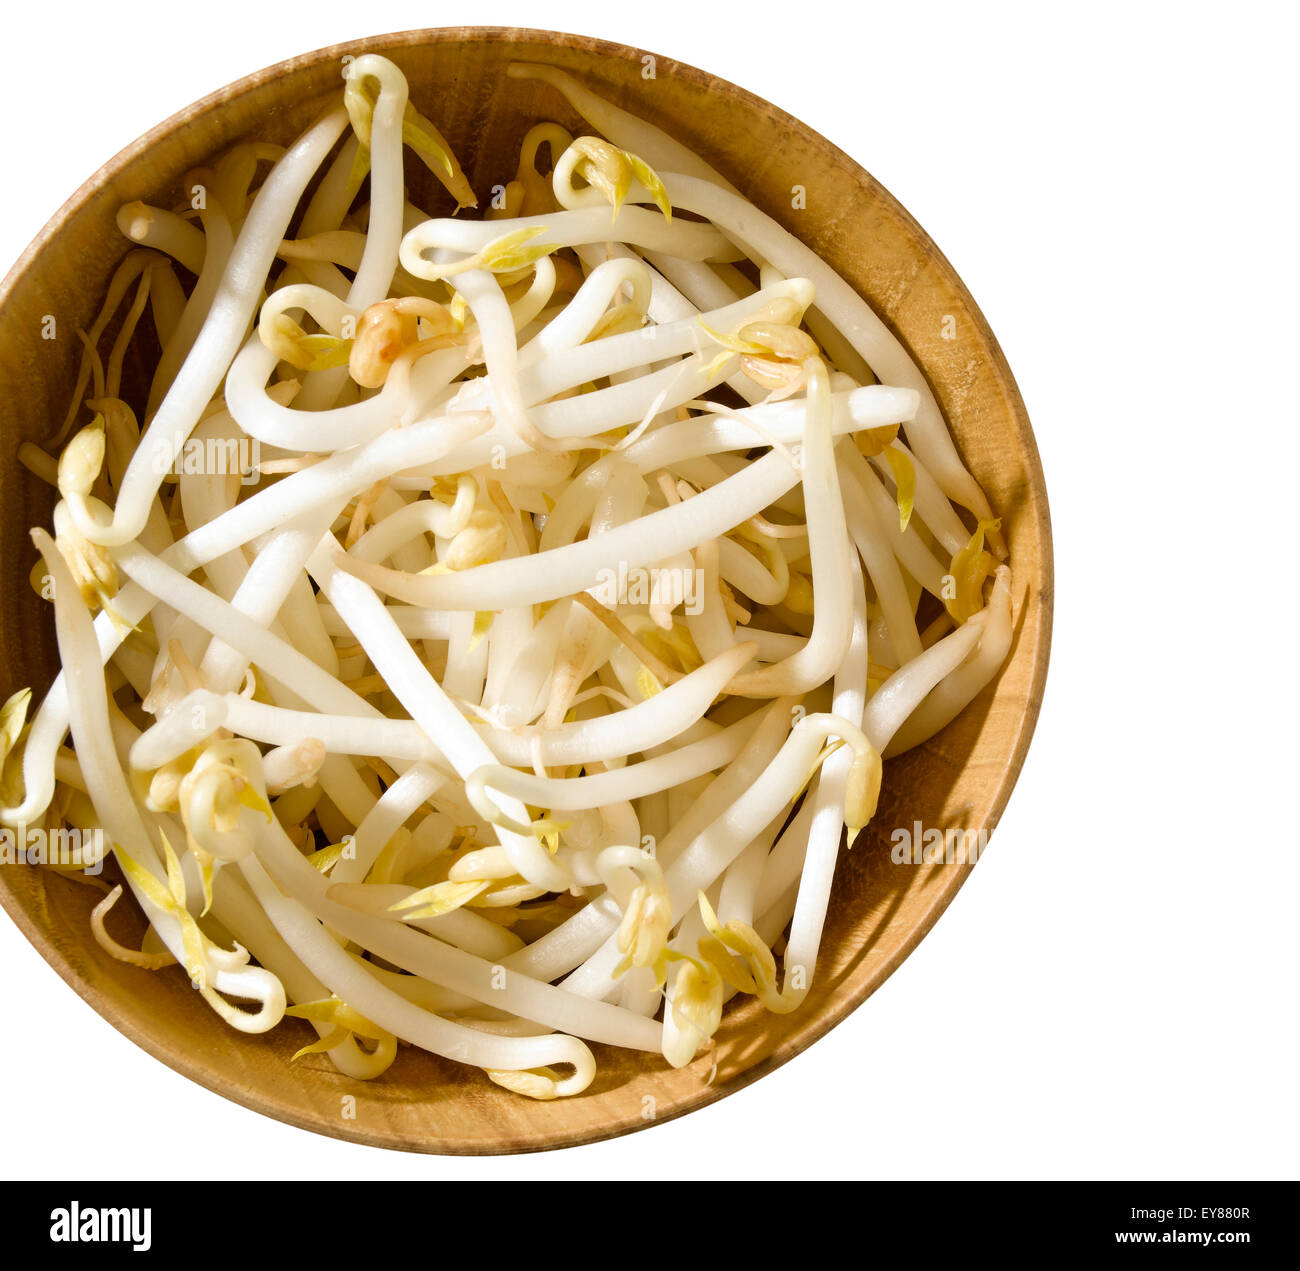 bean sprouts isolated - Stock Image